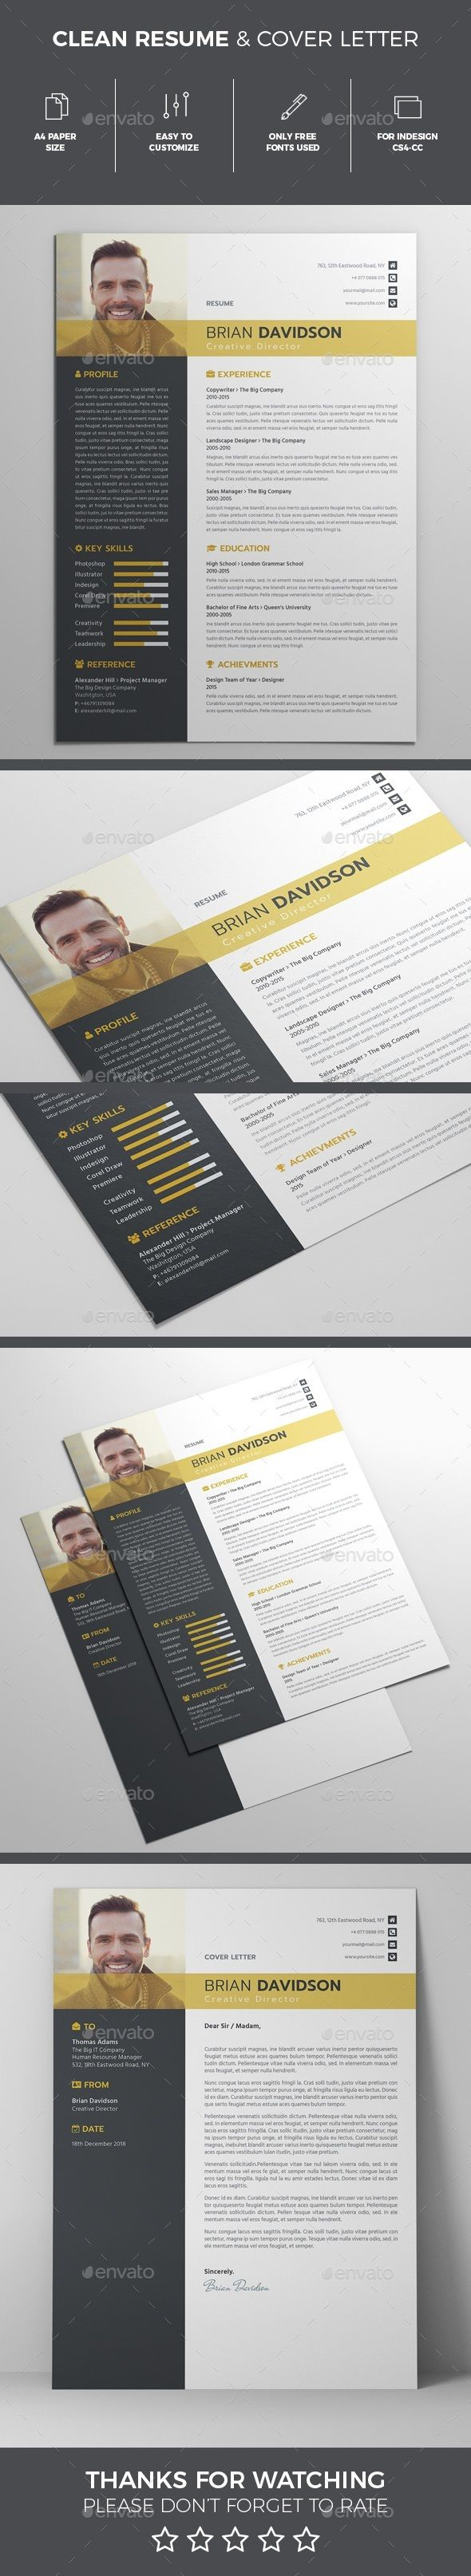 Resume Templates Template InDesign INDD Download